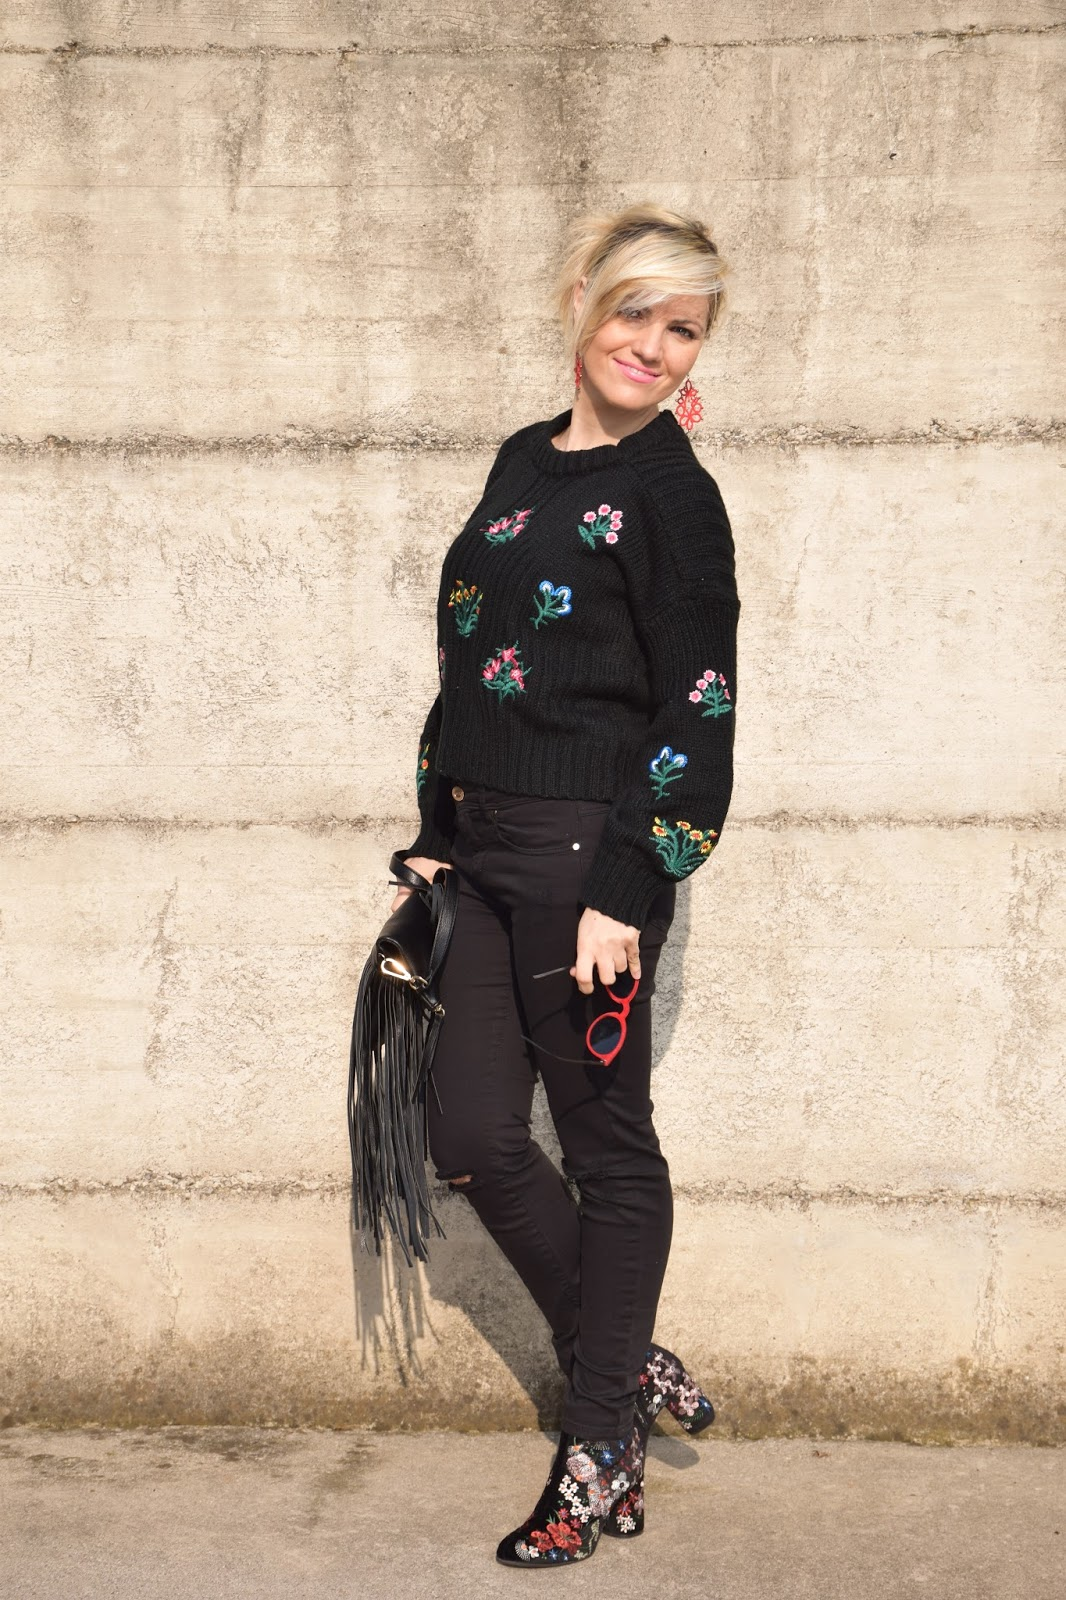 Color-Block By FelyM : OUTFIT BLACK EMBROIDERED SWEATER AND